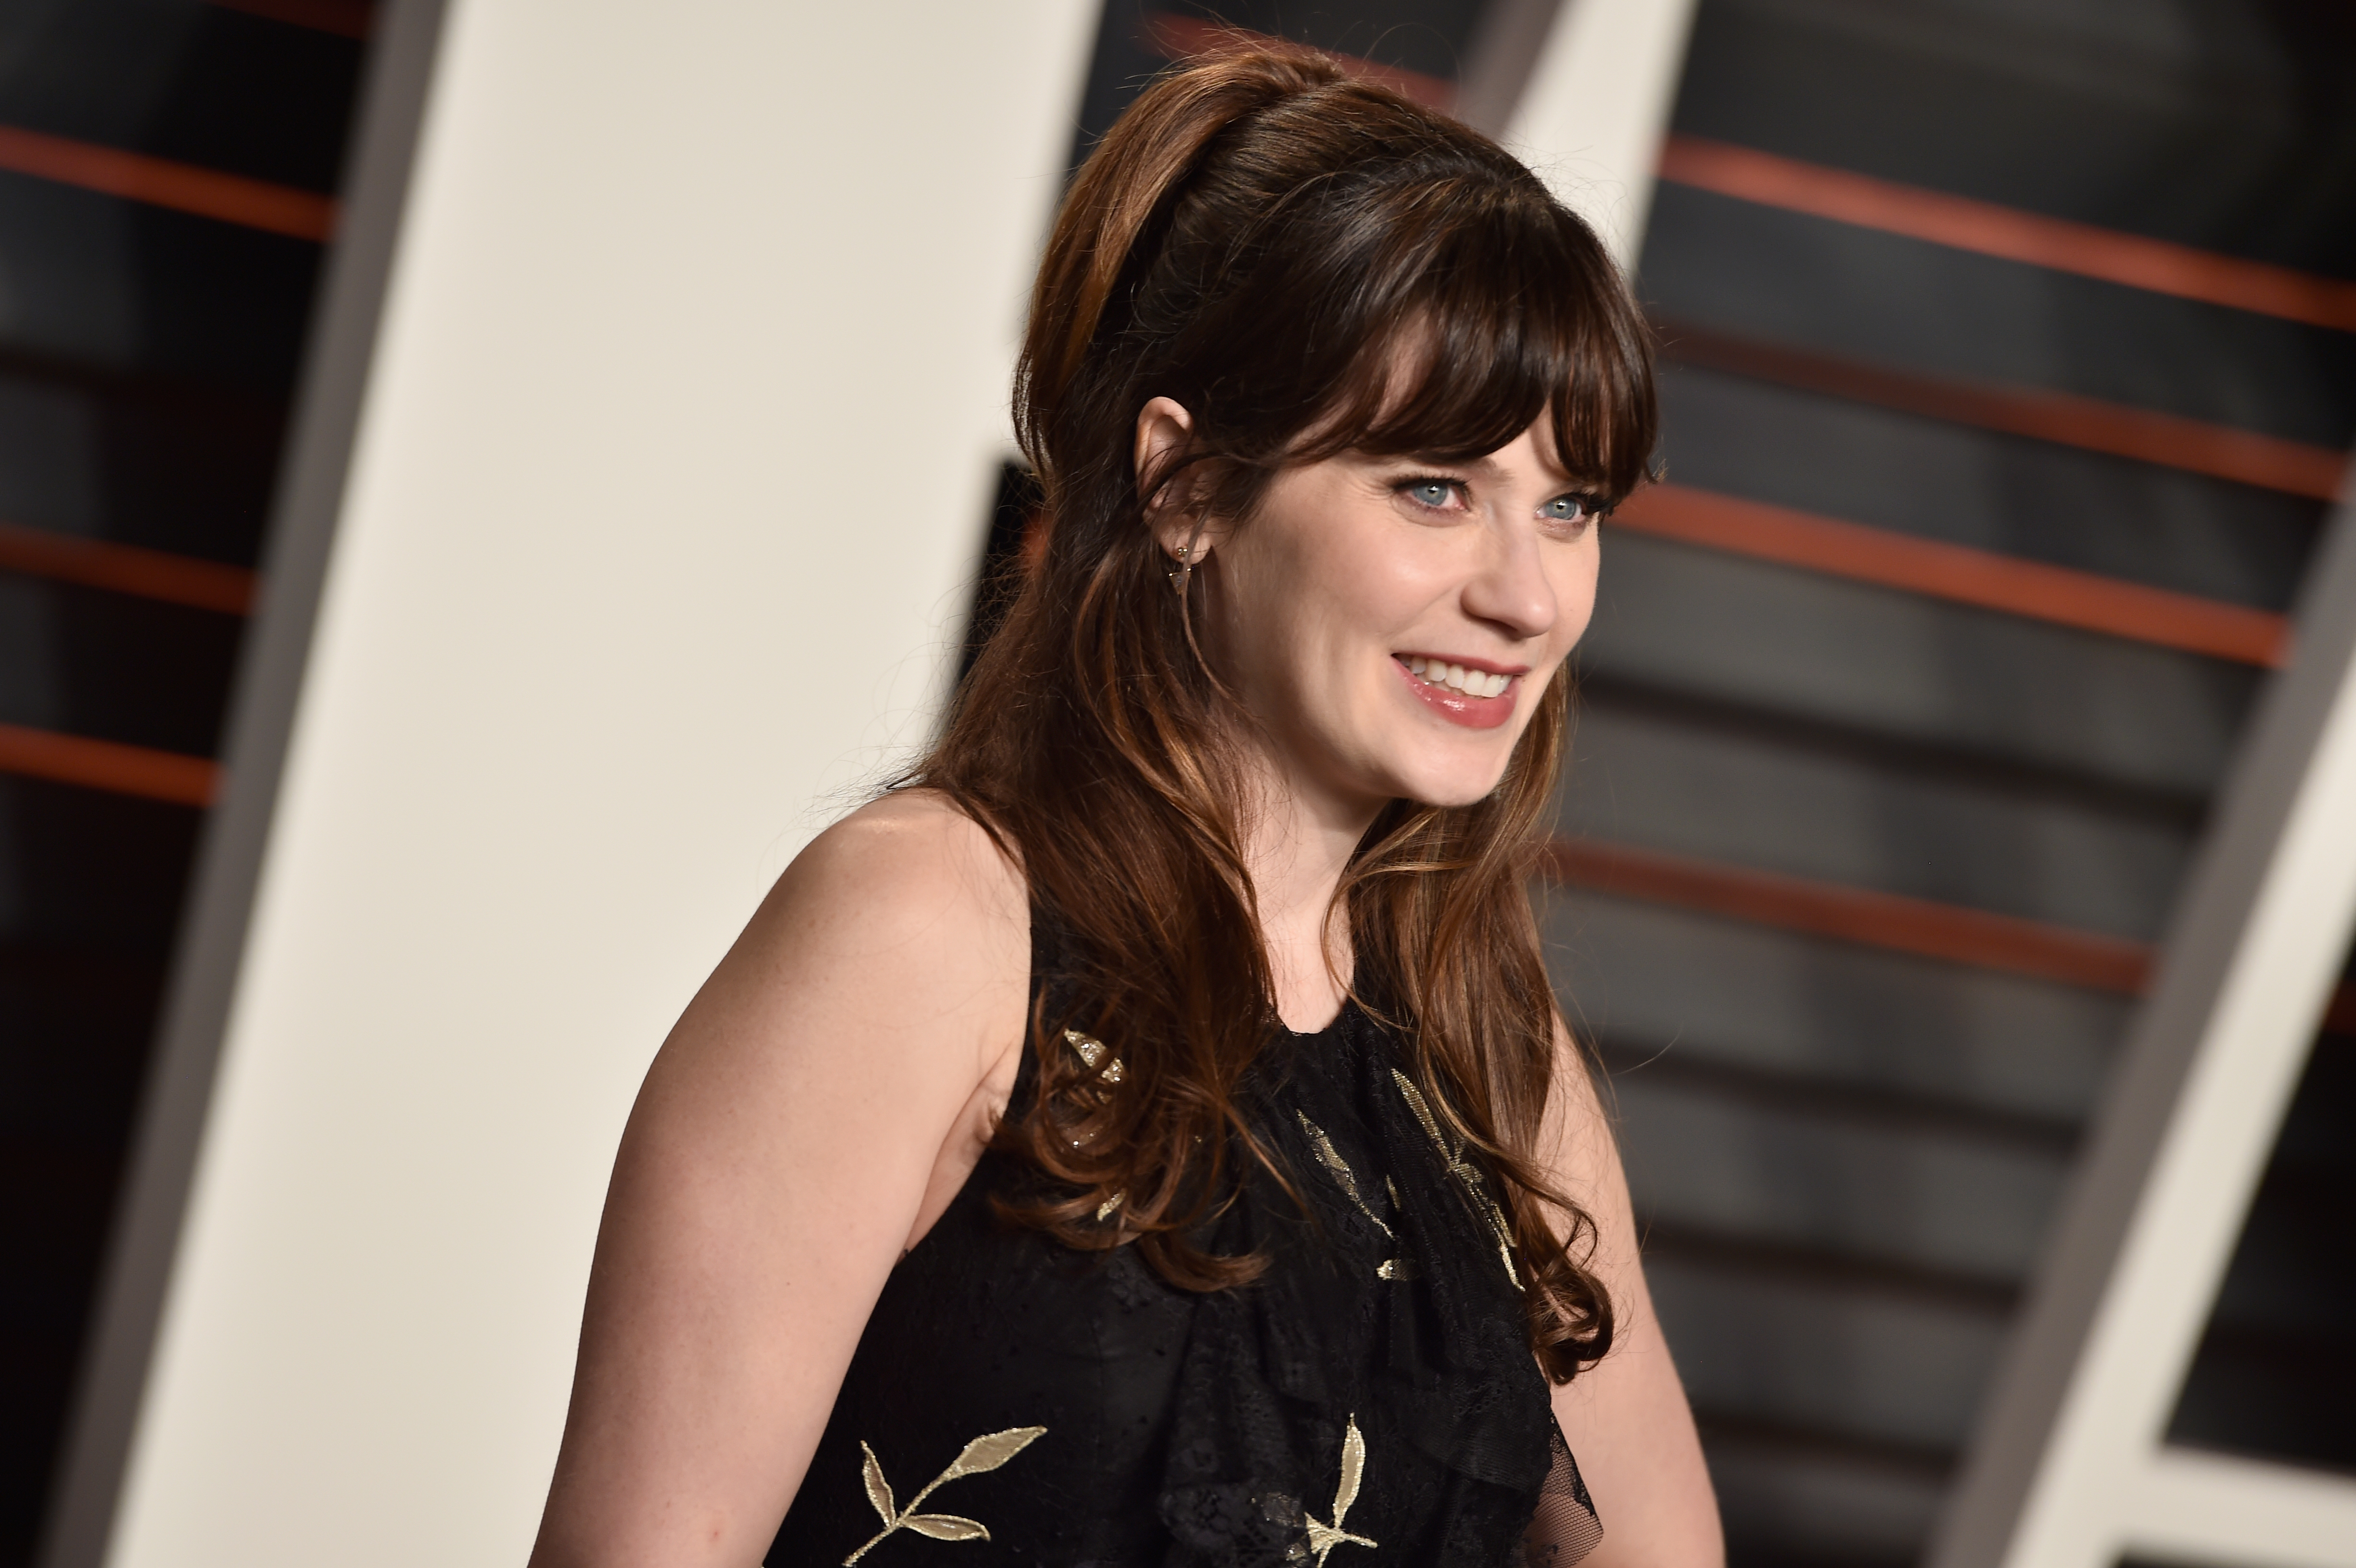 Fashion style Deschanel zooey foxs new girl for woman